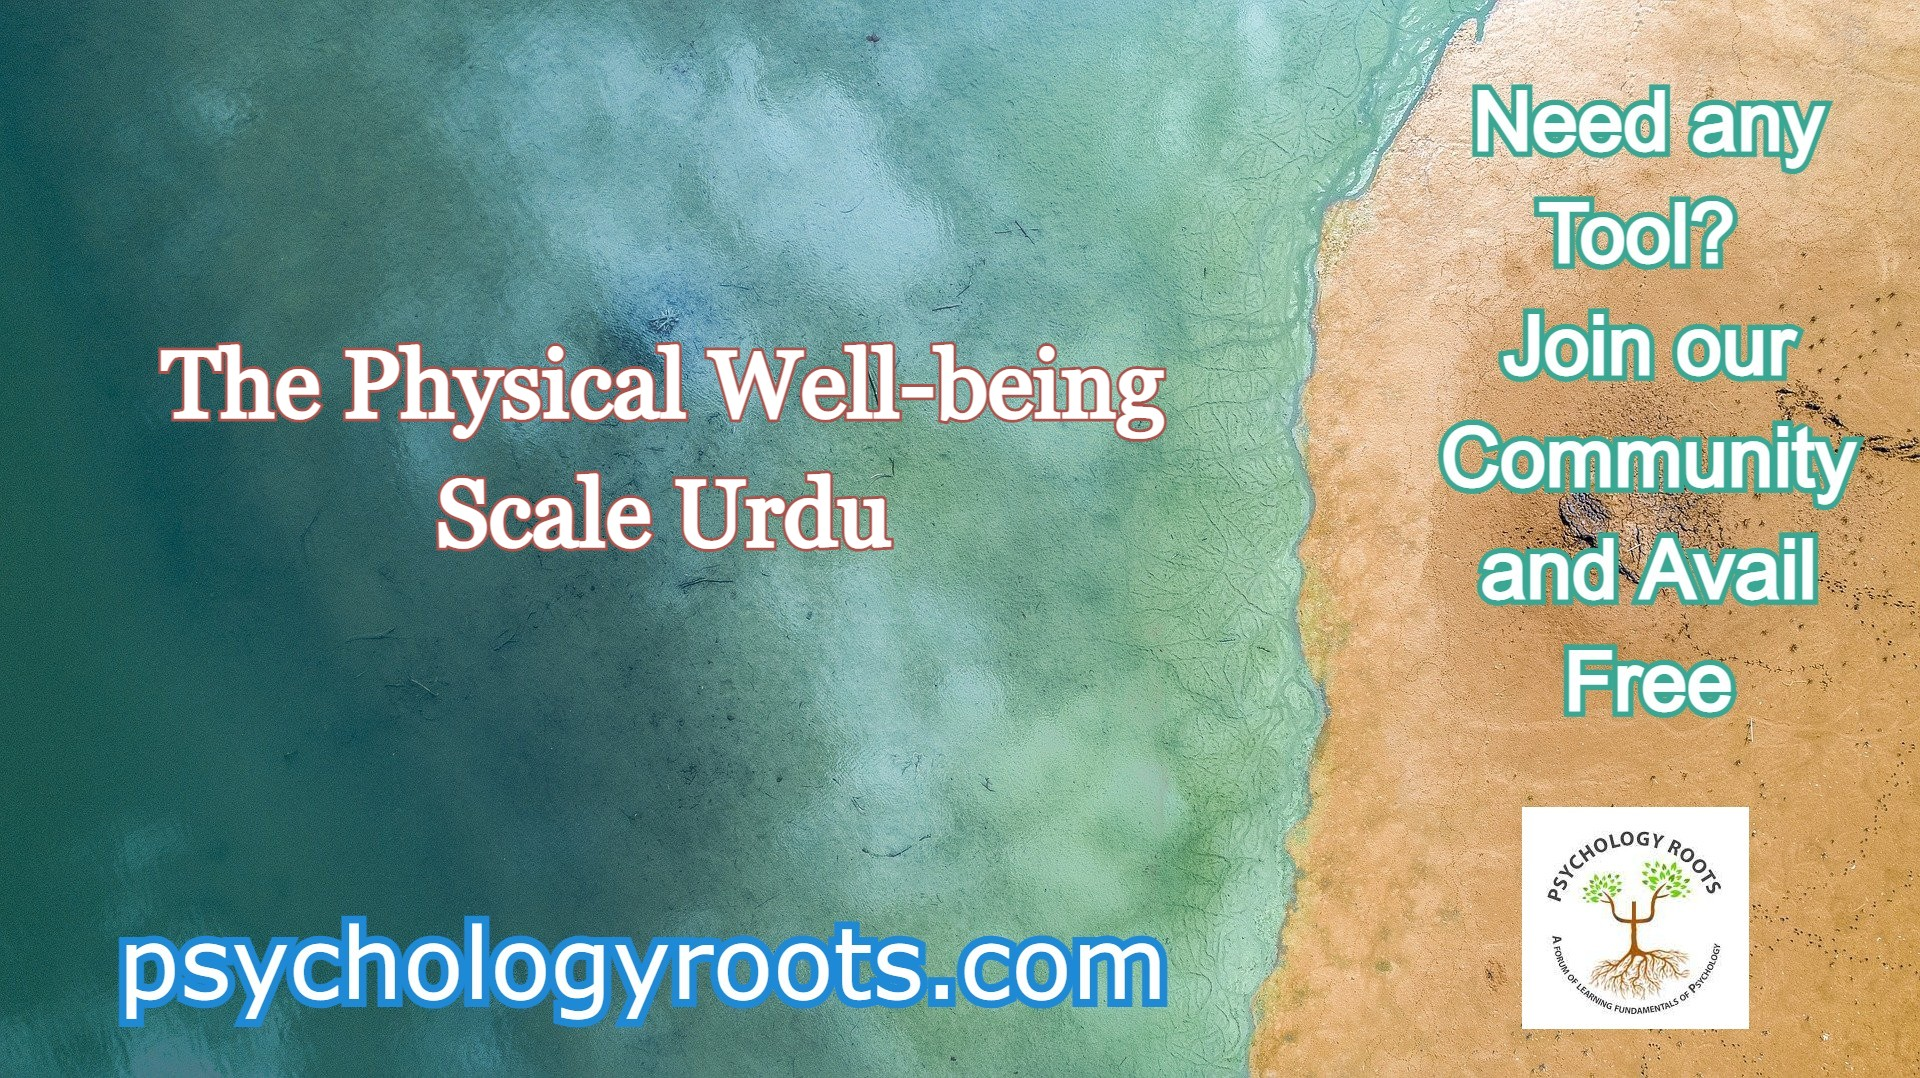 The Physical Well-being Scale Urdu